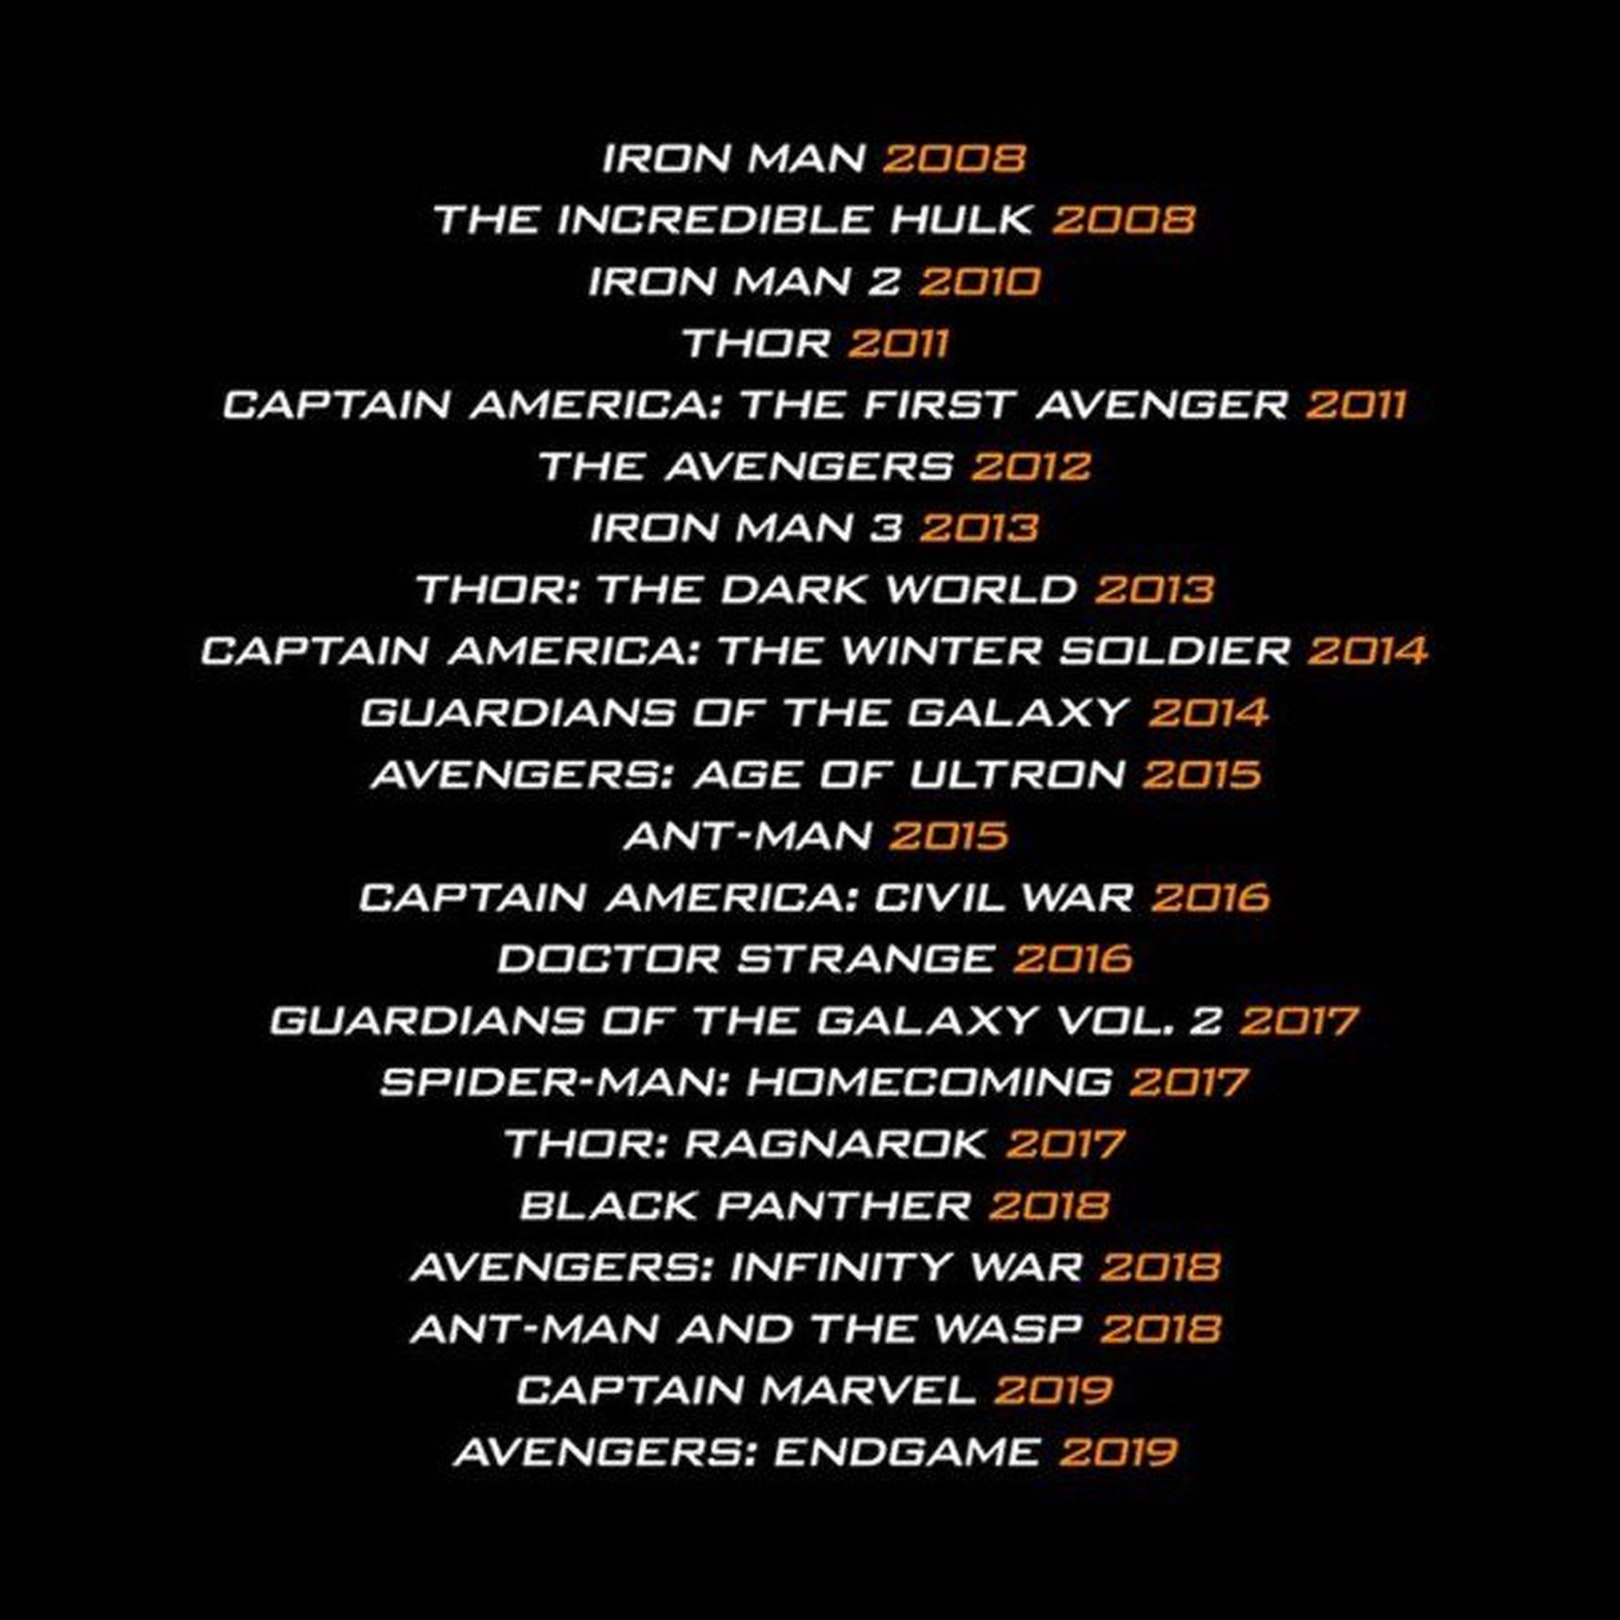 Marvel releases